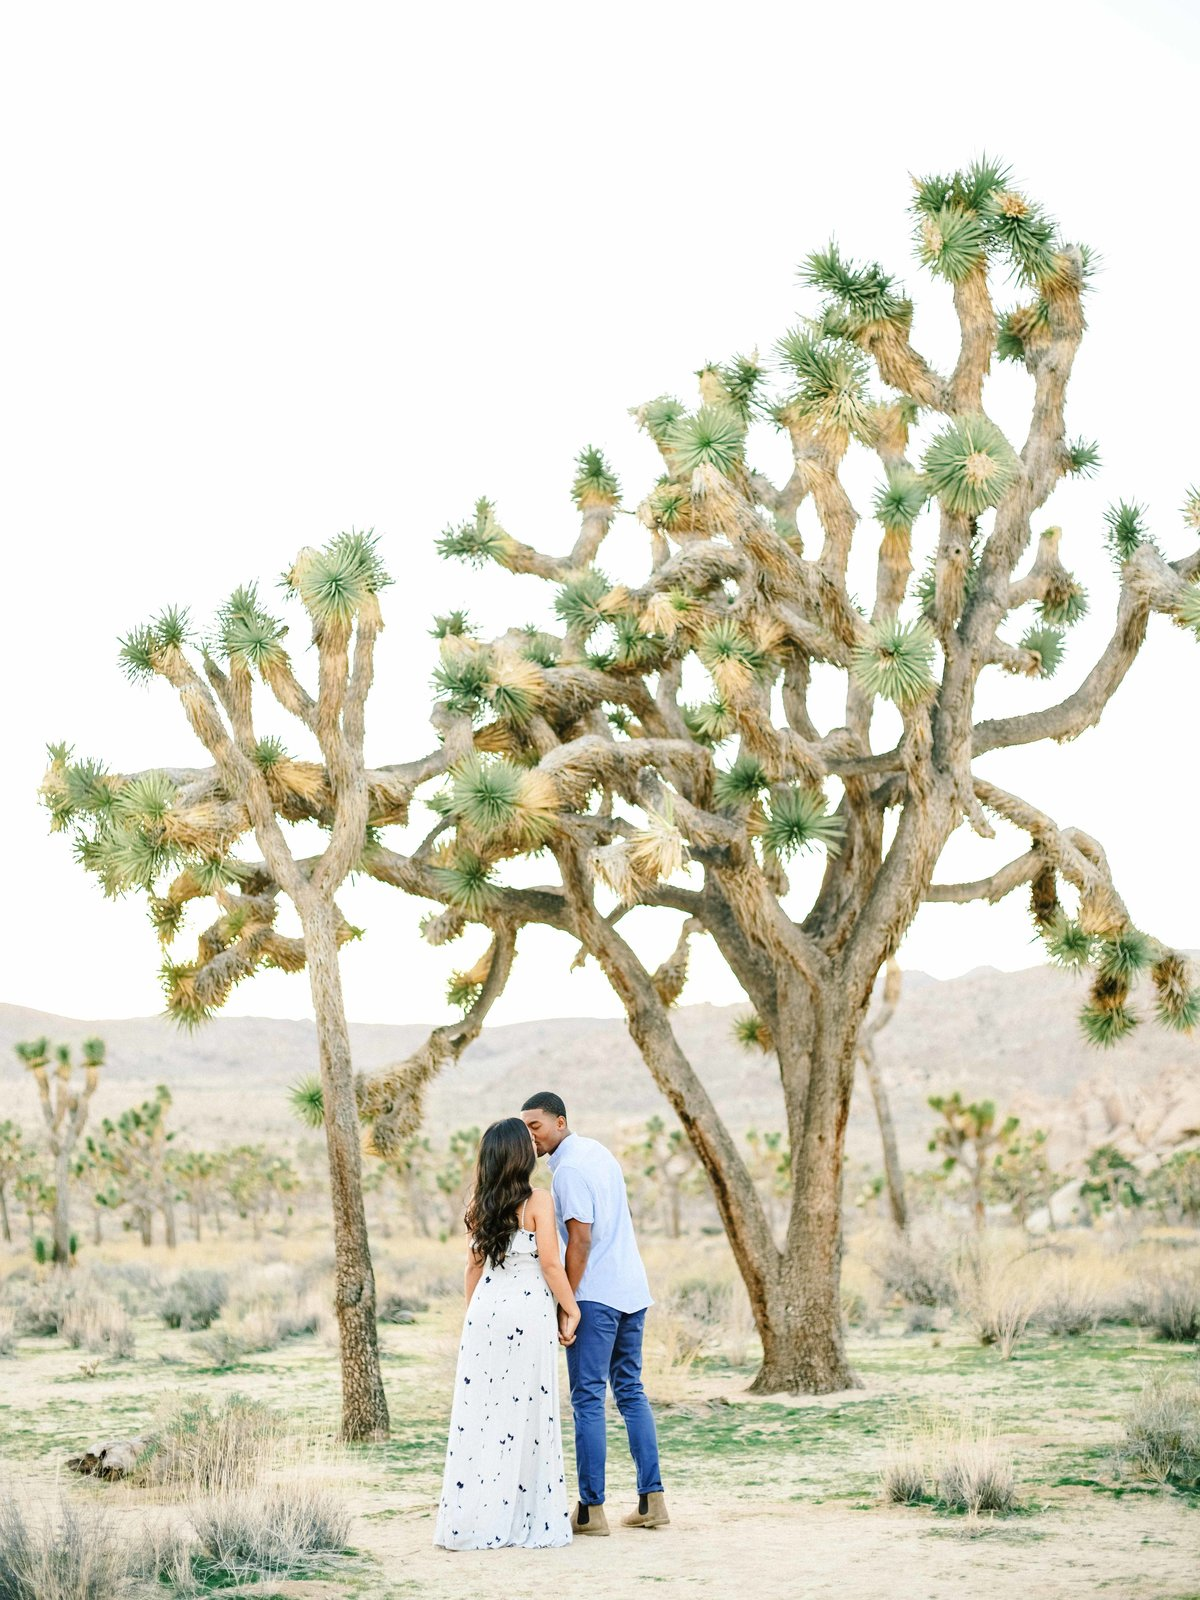 Babsie-Ly-Photography-Joshua-Tree-Engagement-Photography-Fine-Art-Film-MarinaEvan-005